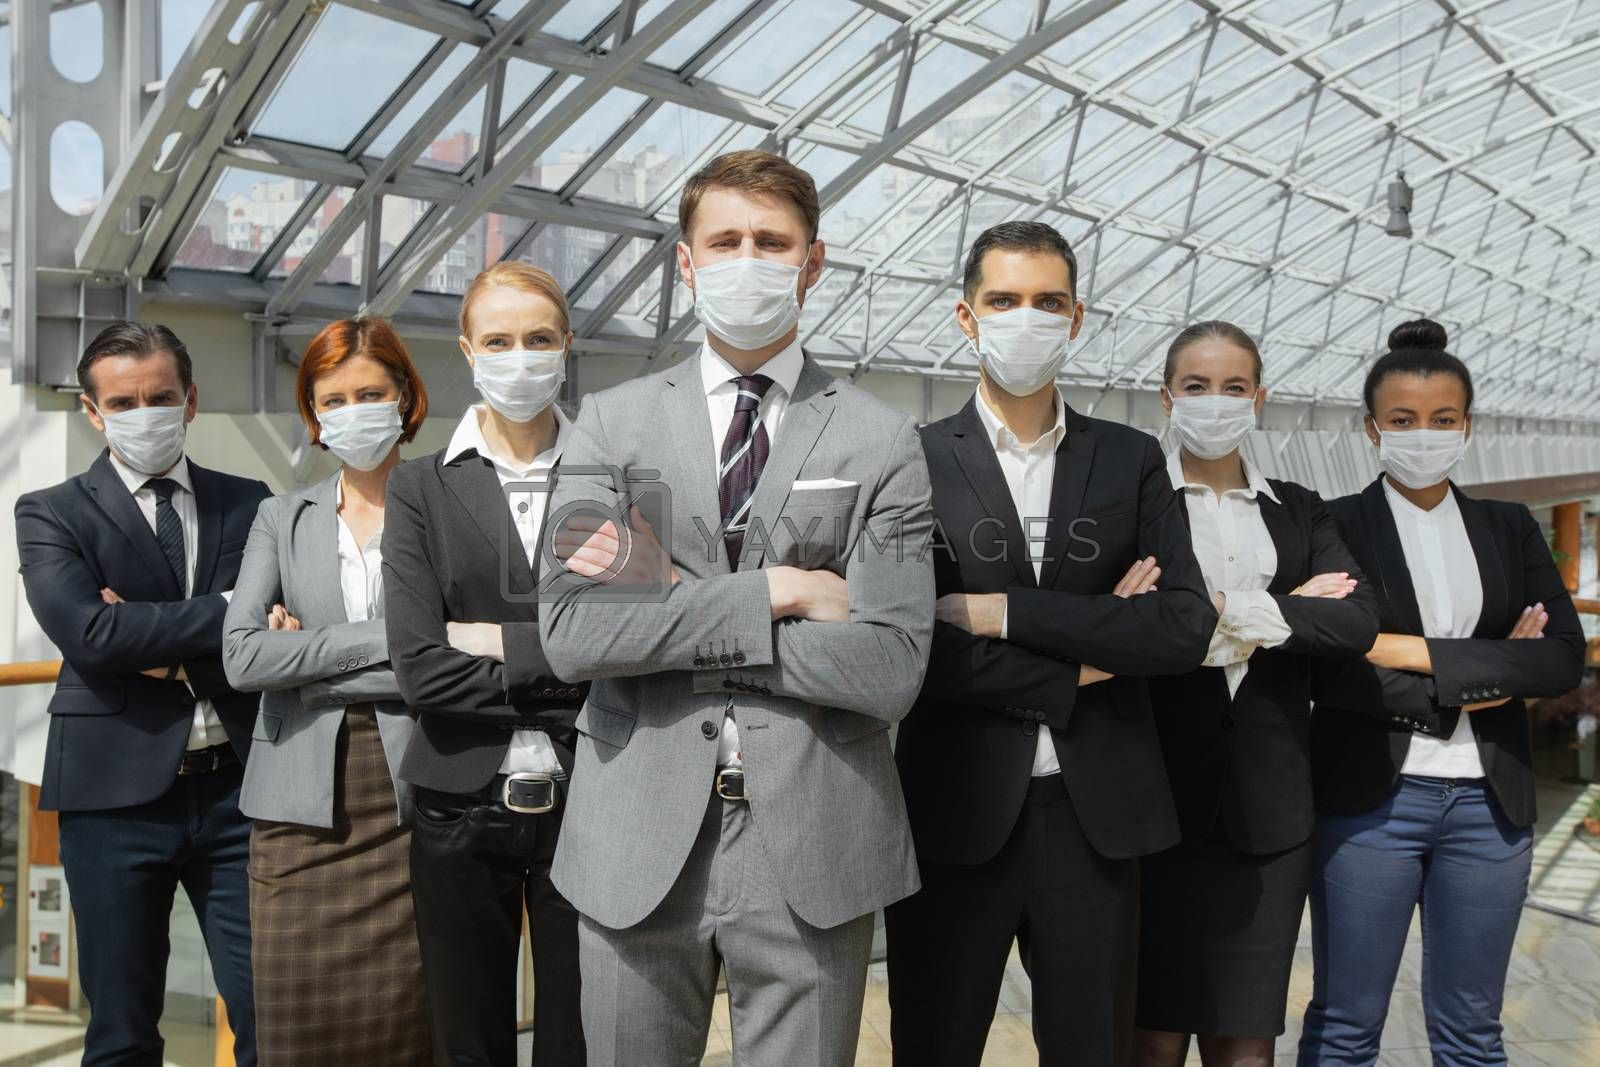 Business people wearing surgical masks by ALotOfPeople